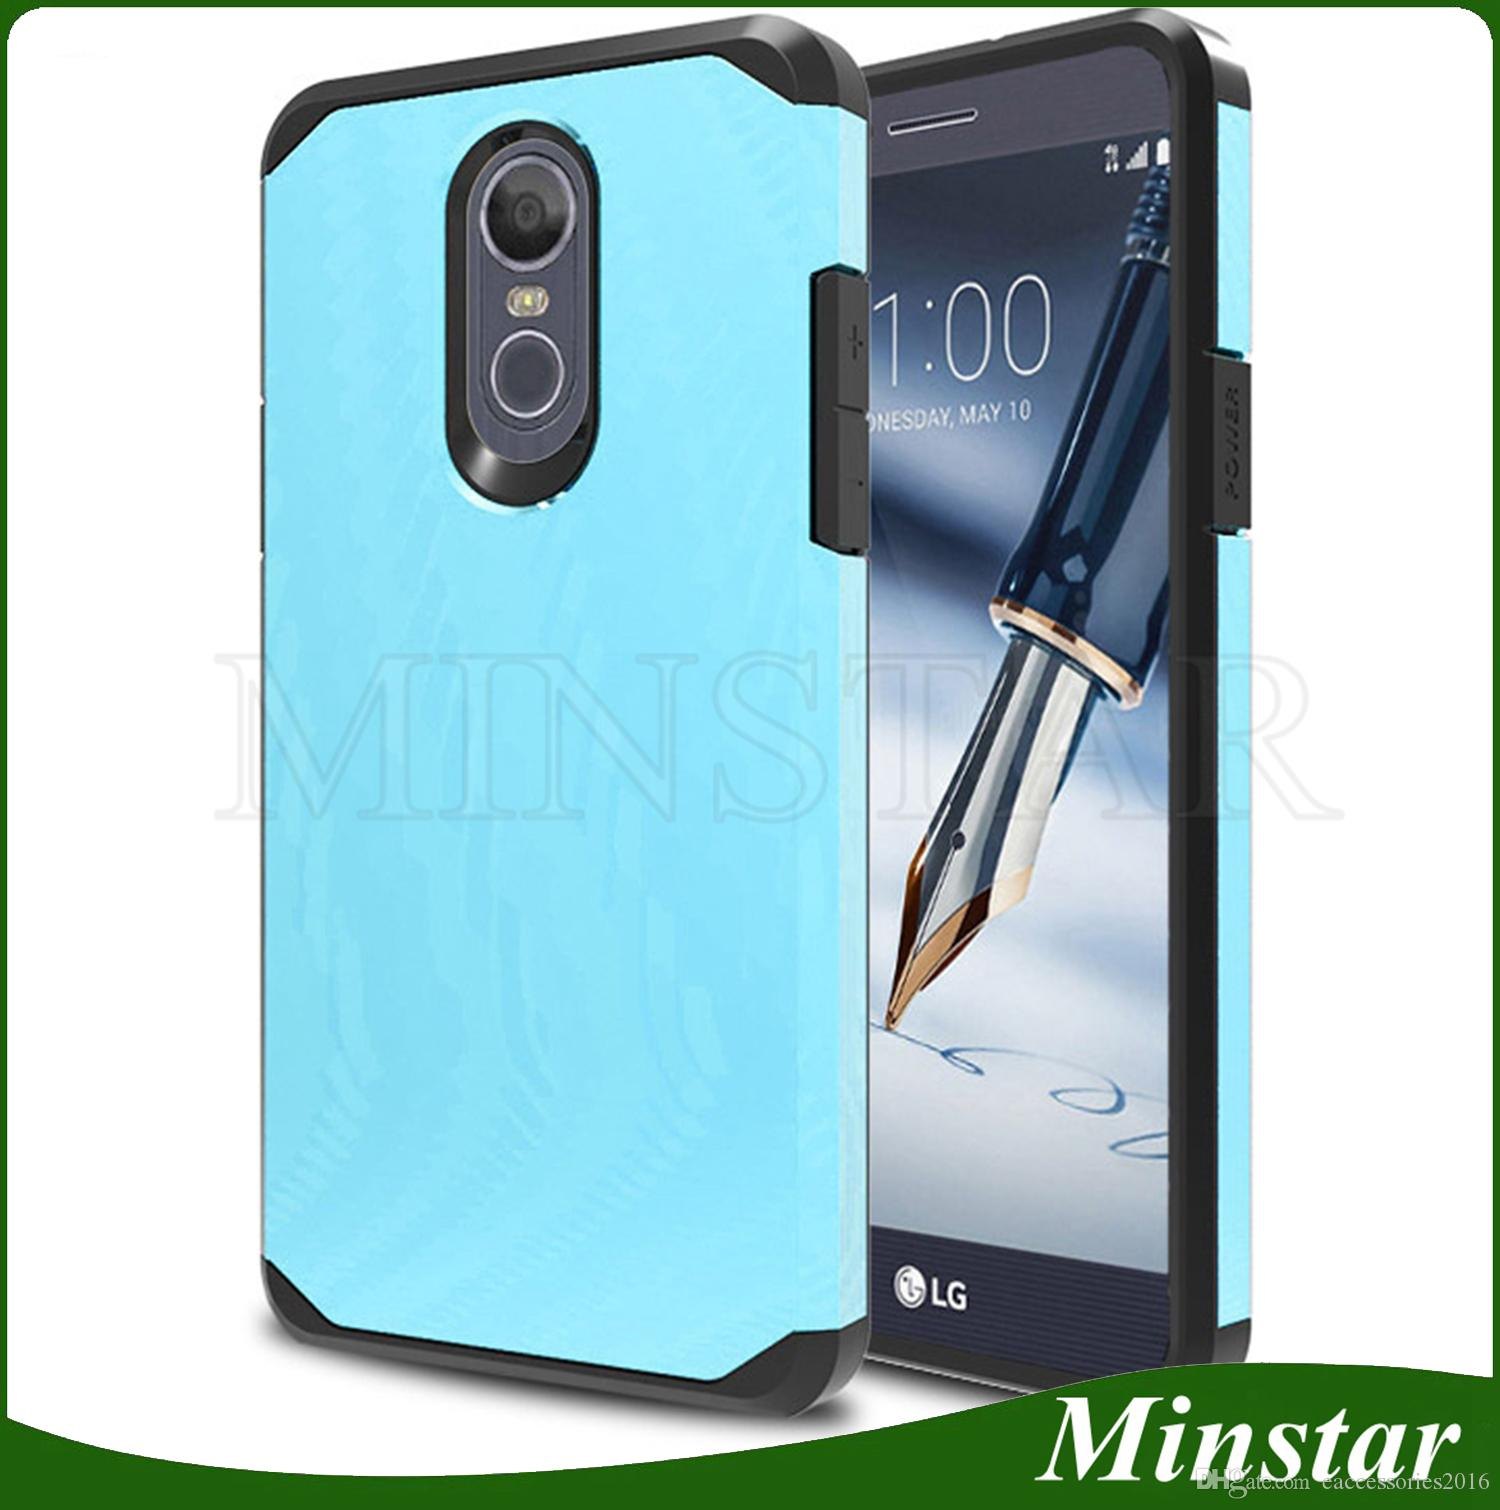 quality design 0500a e4dac Hot Sale Amazon Defender Slim Case For LG Stylo 4 Q Stylus Stylo 3 Plus  Aristo 3 2 X210 MS210 K20 Plus K10 K8 K4 2017 Shockproof Cover